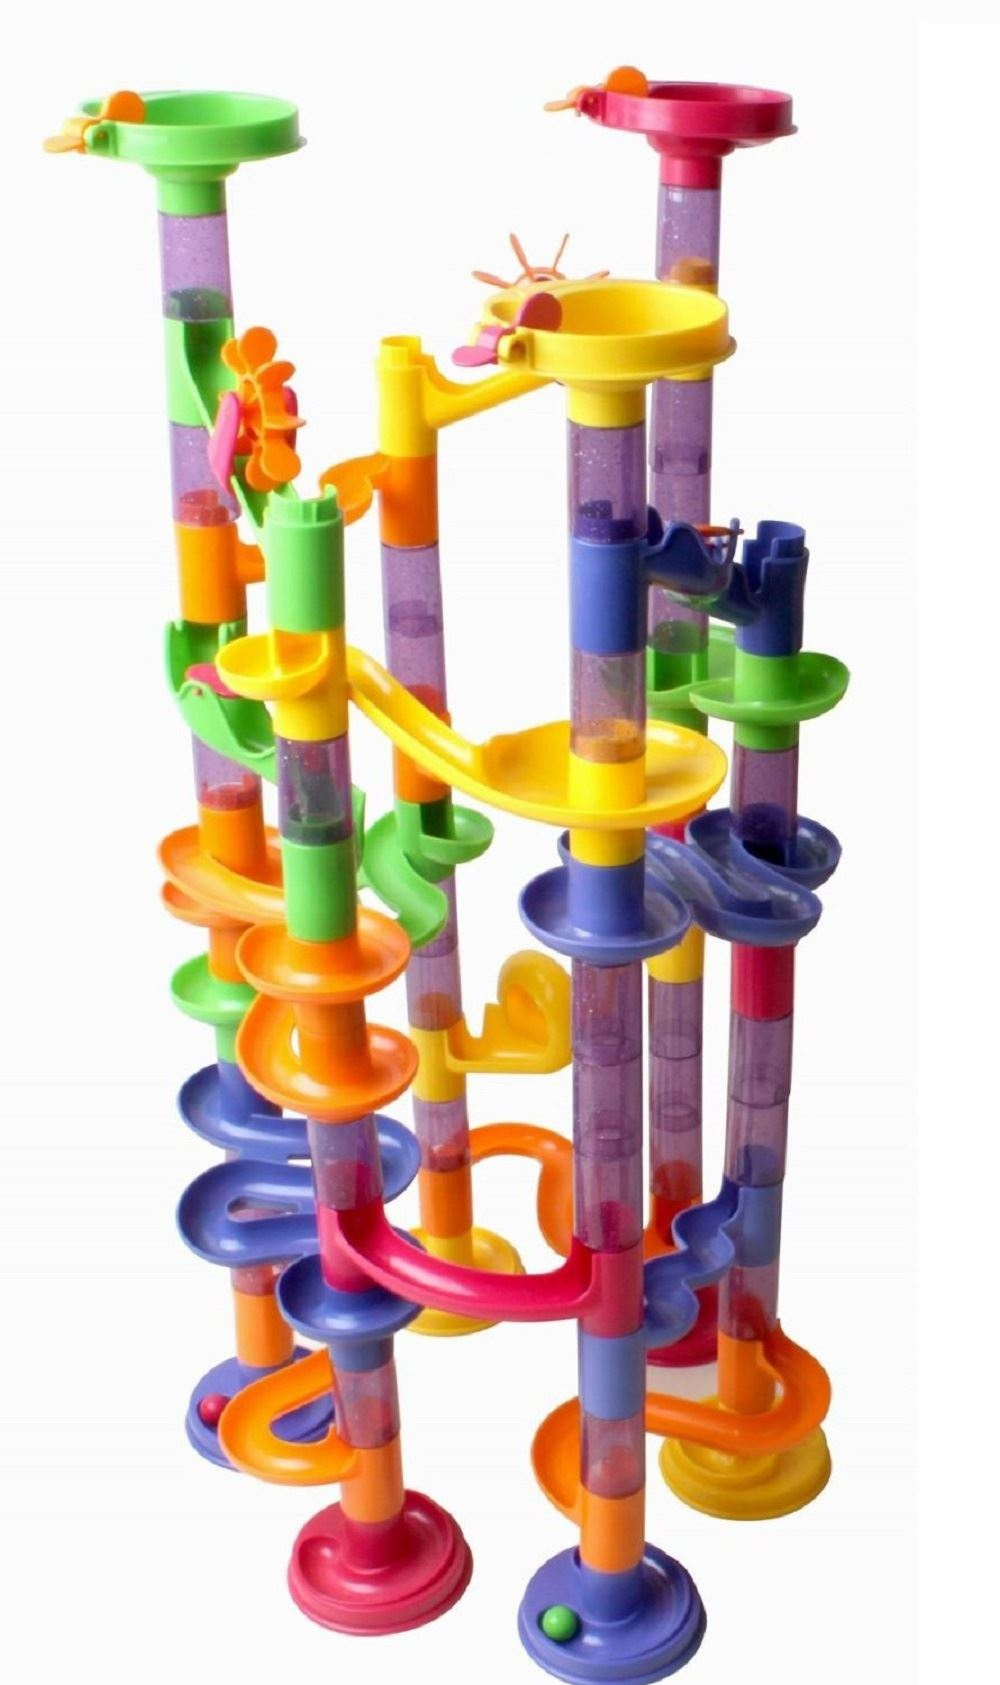 Marble Toys Blocks : Marble run race construction childrens kids building